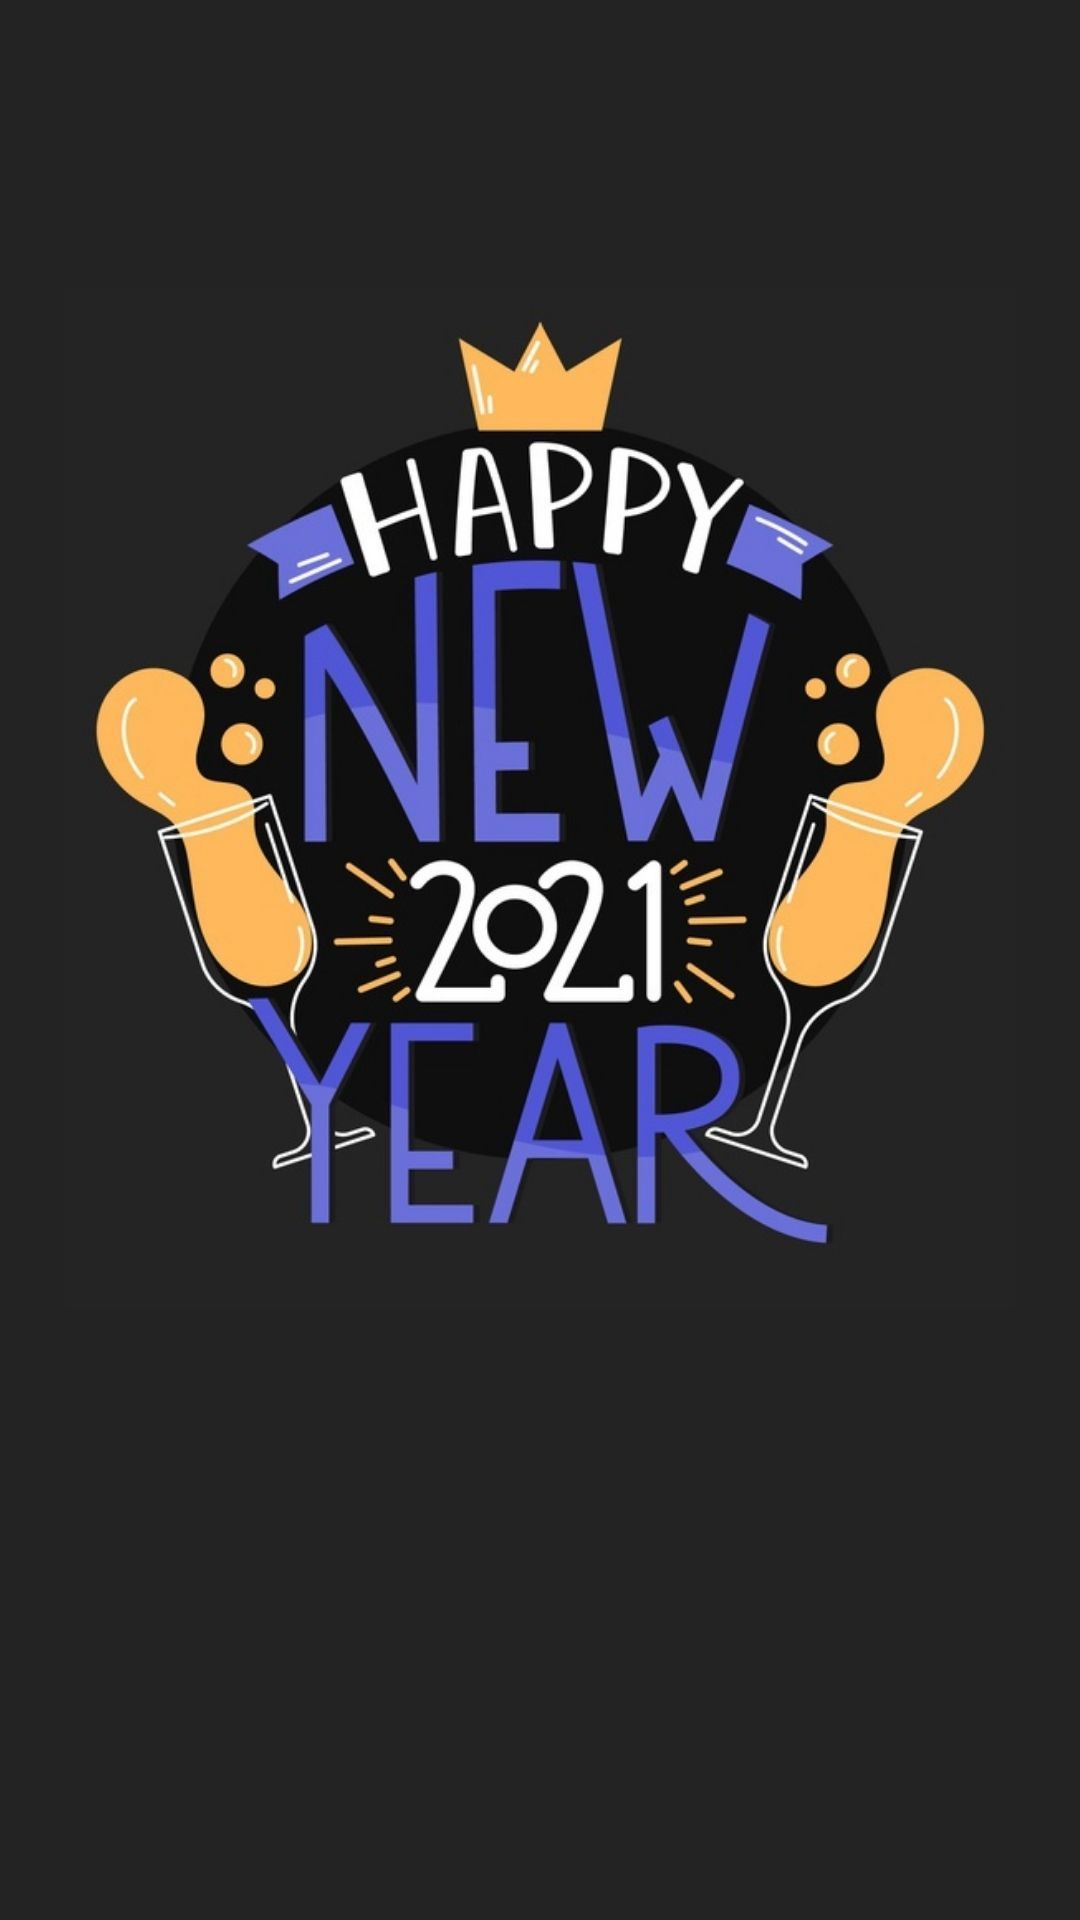 New year cute wallpapers 2021 for Android and iPhone backgrounds 1080x1920